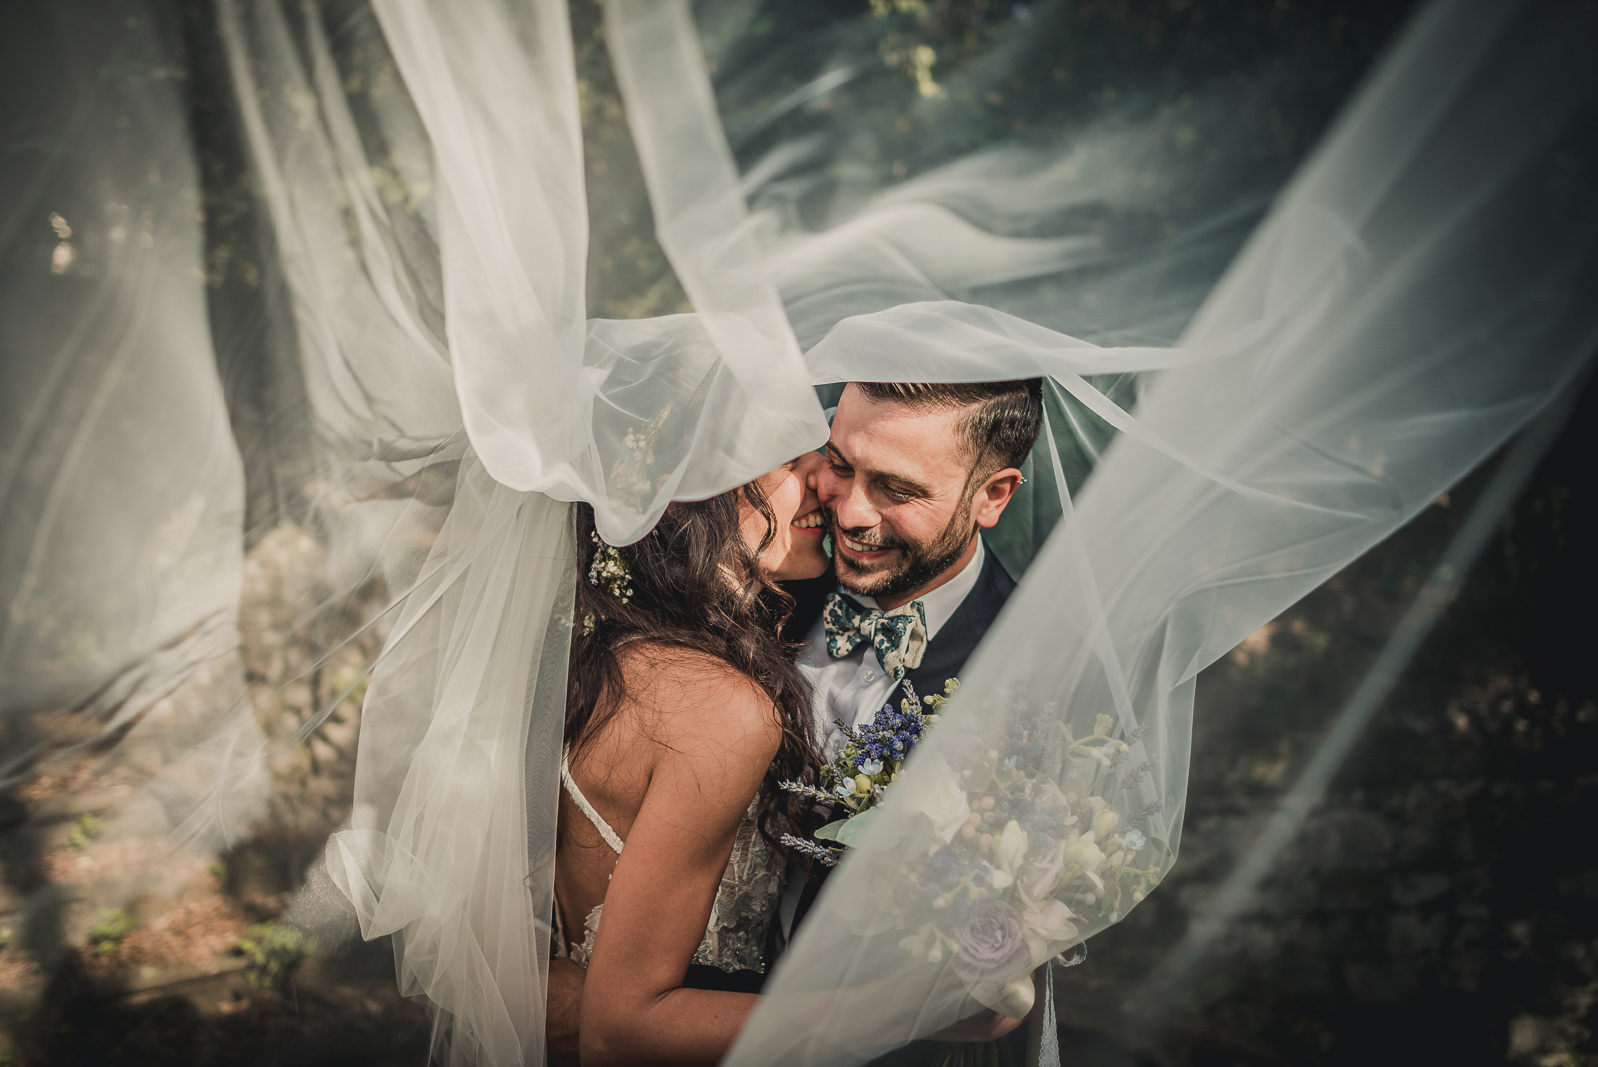 Couple laughing and hugging each other under the bride veil.